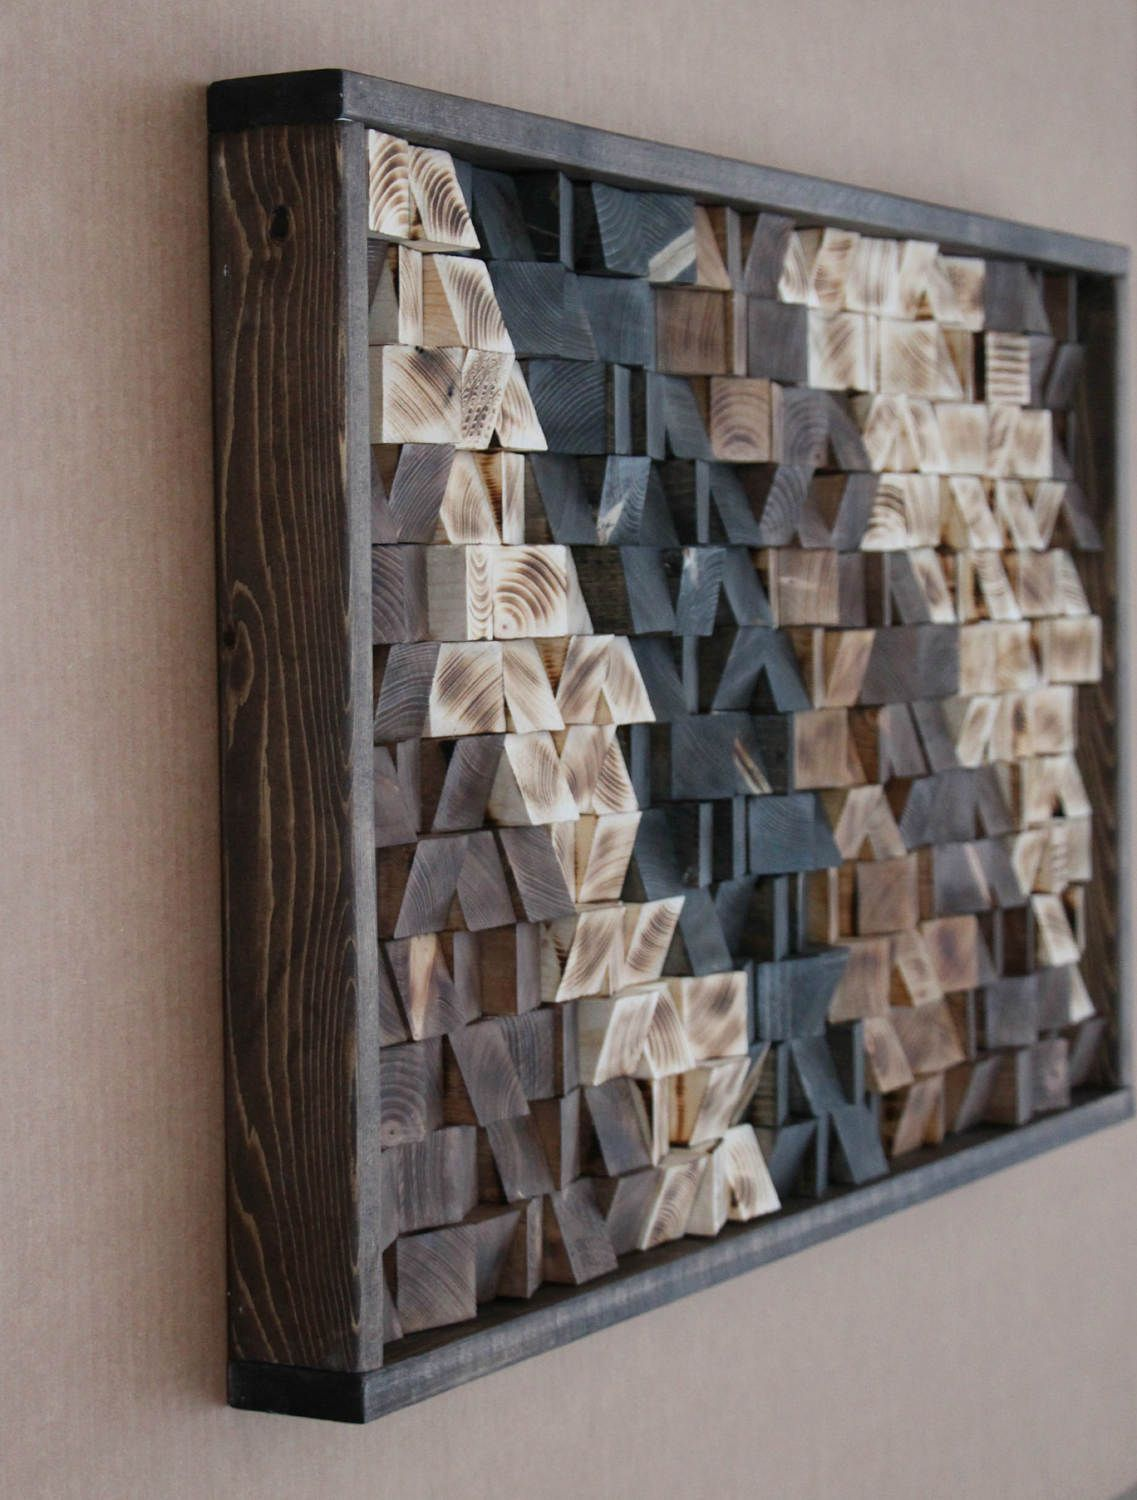 Large Reclaimed Wood Wall Art, Wood Wall Decor, Headboard, Geometric  Pattern, Wood